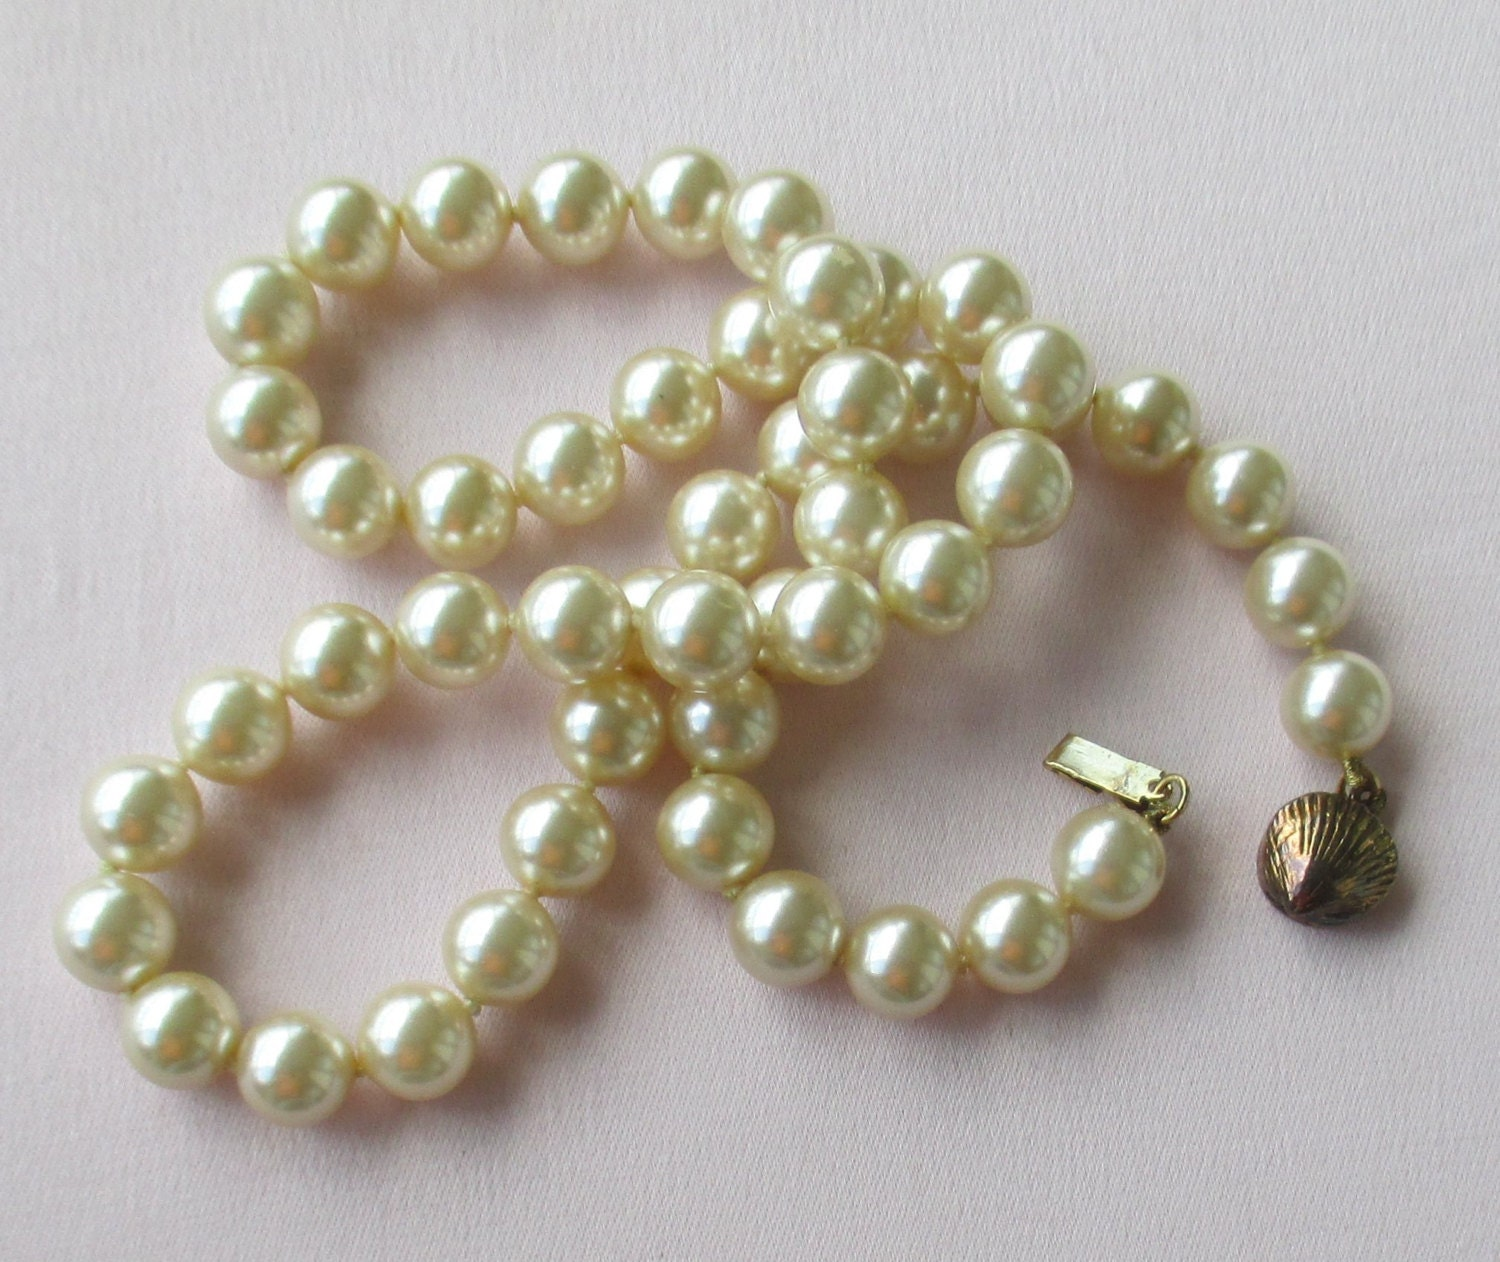 Vintage Single Strand Faux Pearl Necklace Clam Shell Shaped